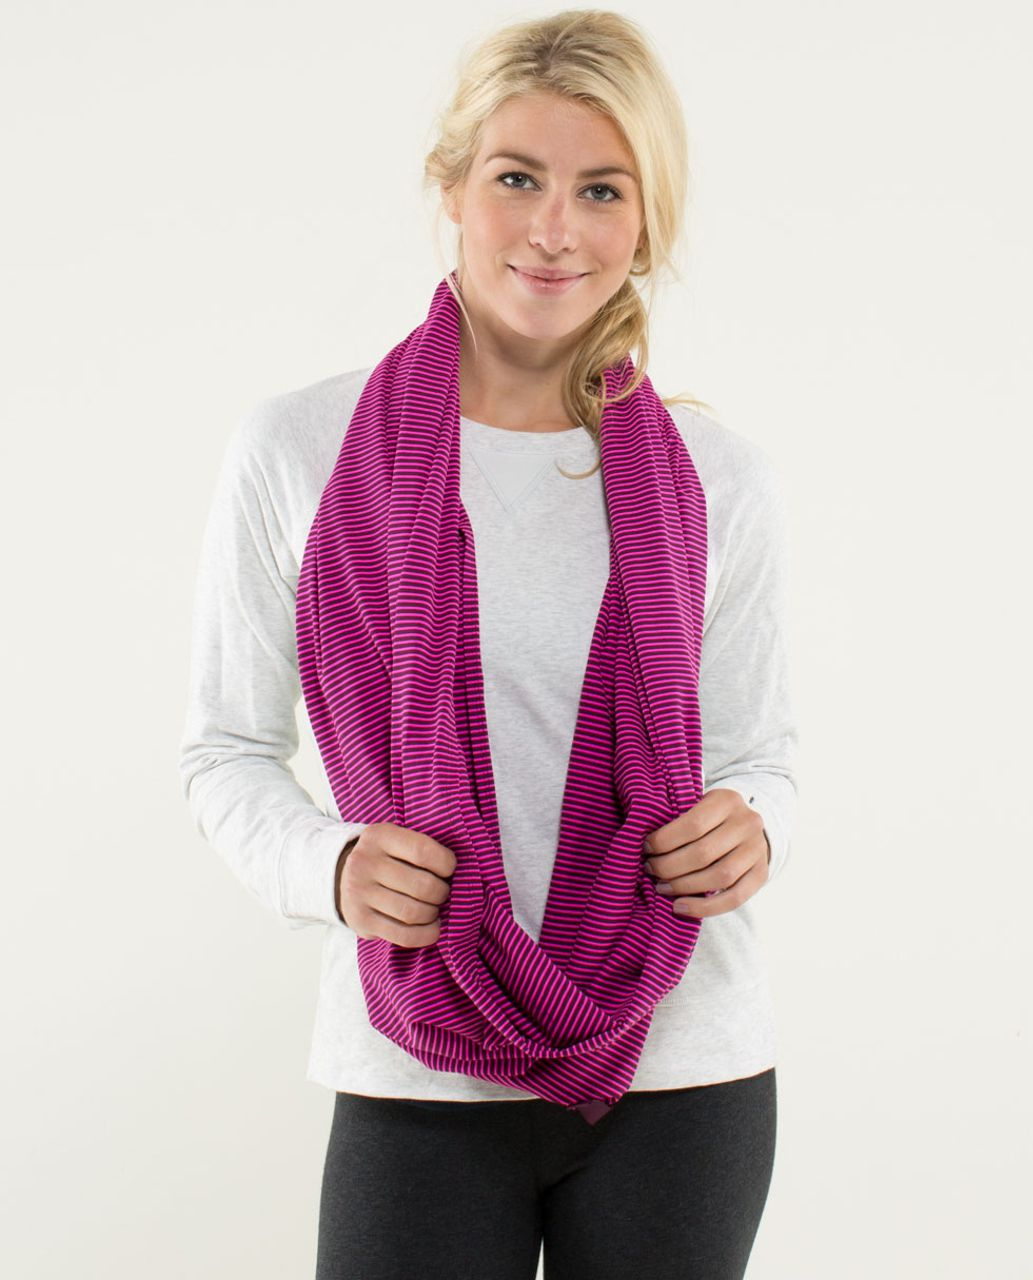 Lululemon Vinyasa Scarf *Luon Light - Hyper Stripe Raspberry Glo Light